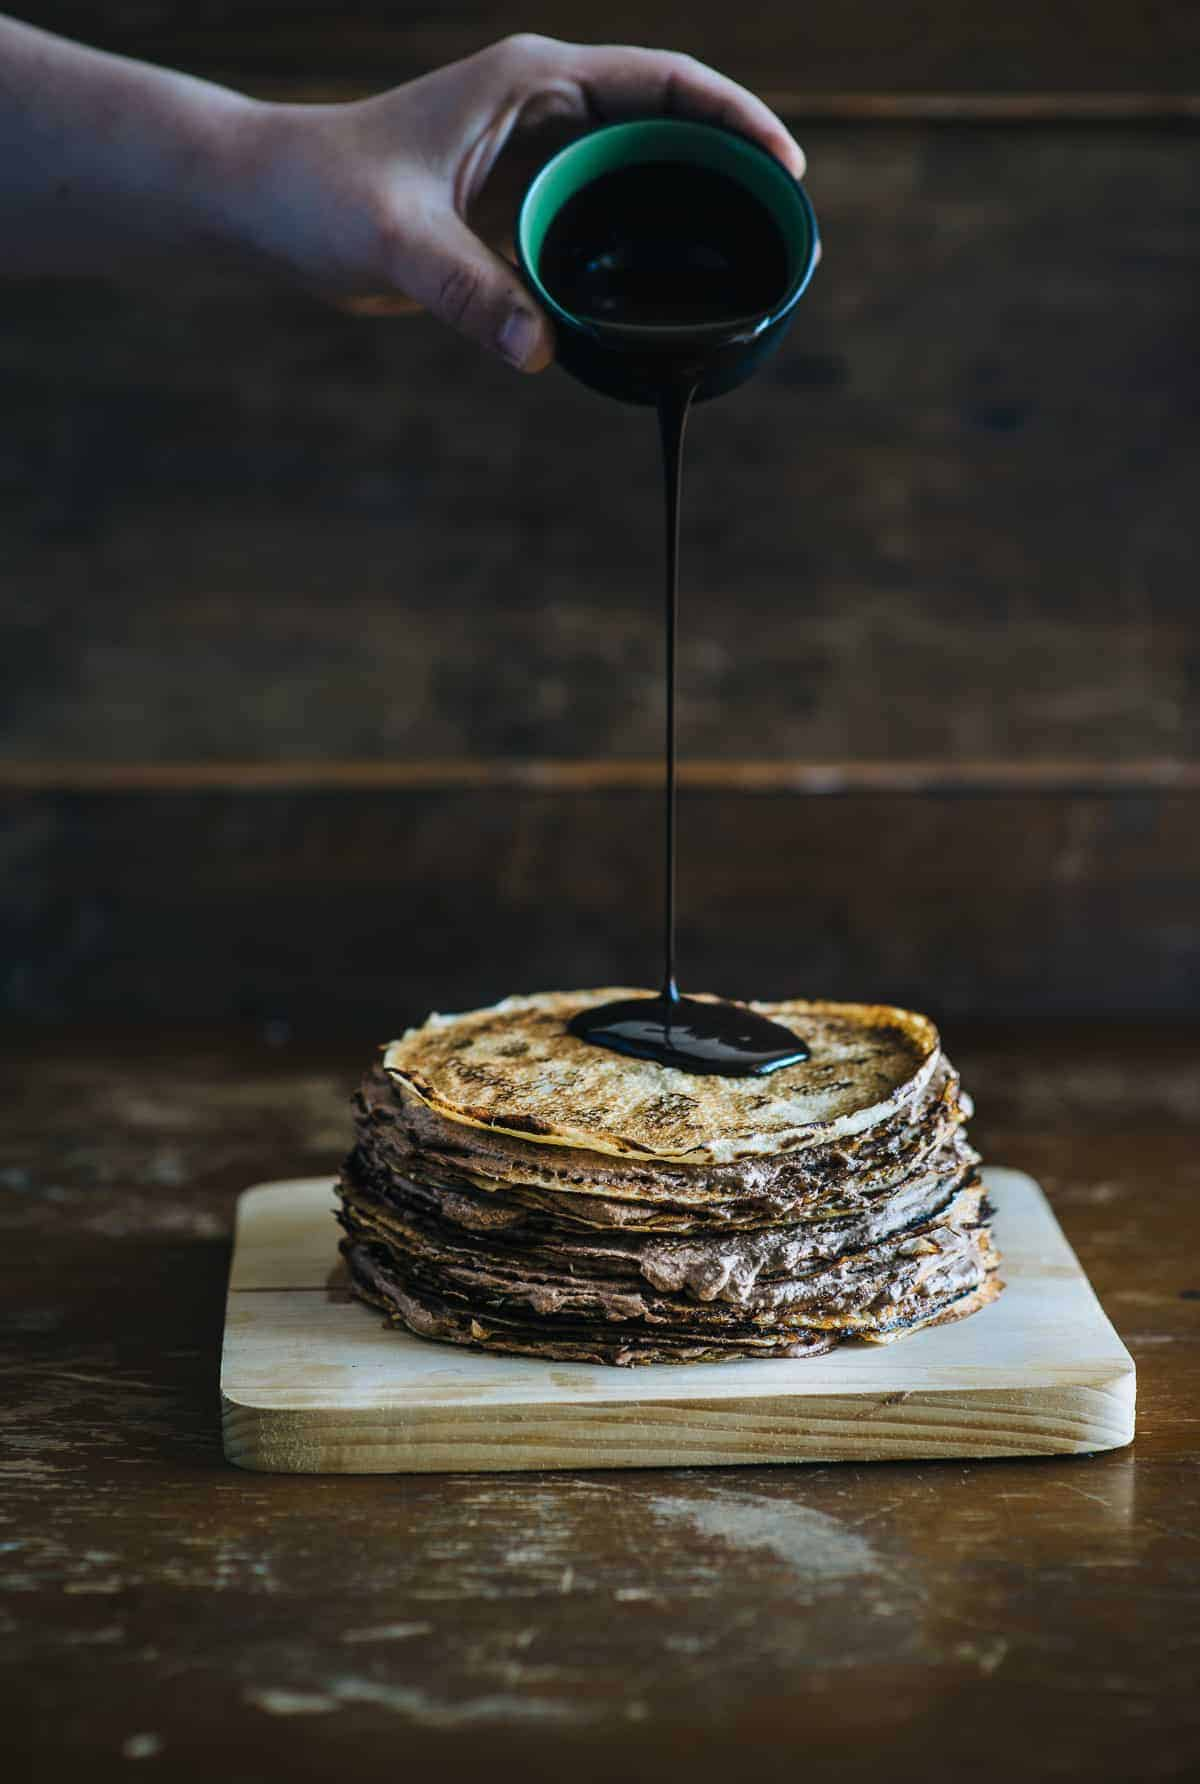 pouring chocolate over Nutella crepe cake